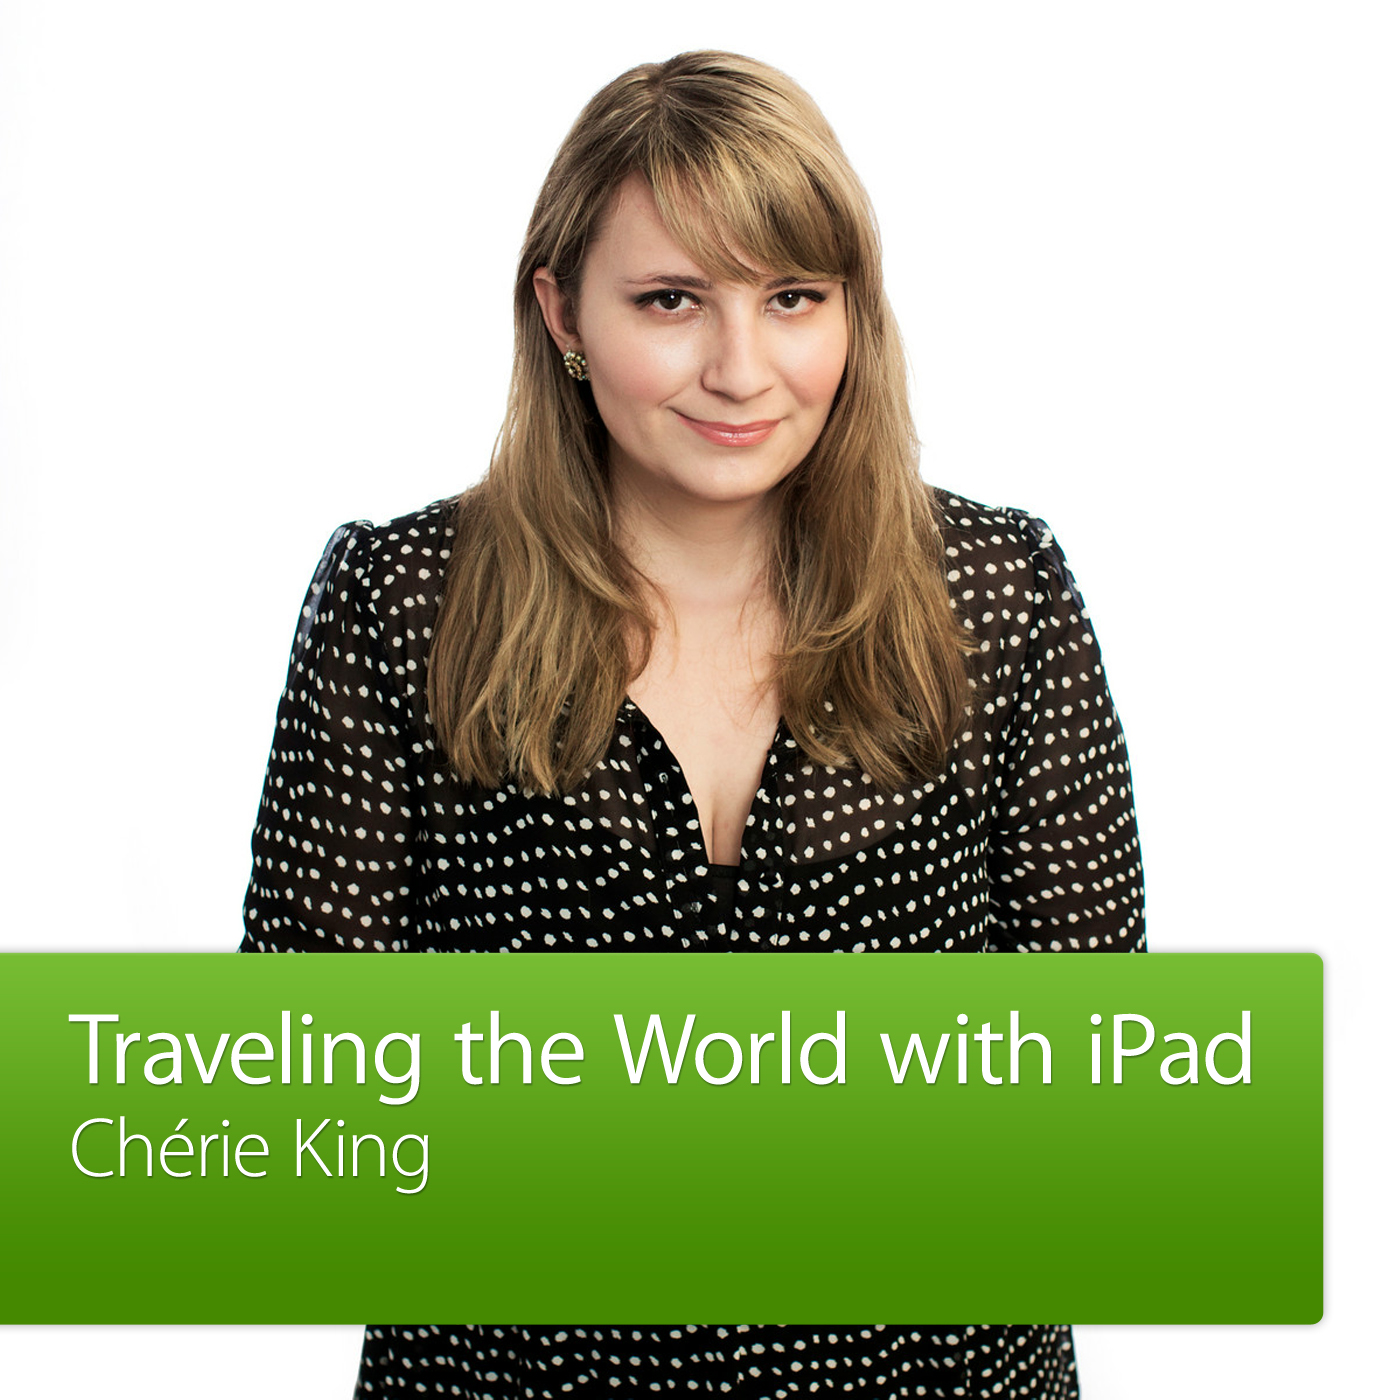 Chérie King: Traveling the World with iPad